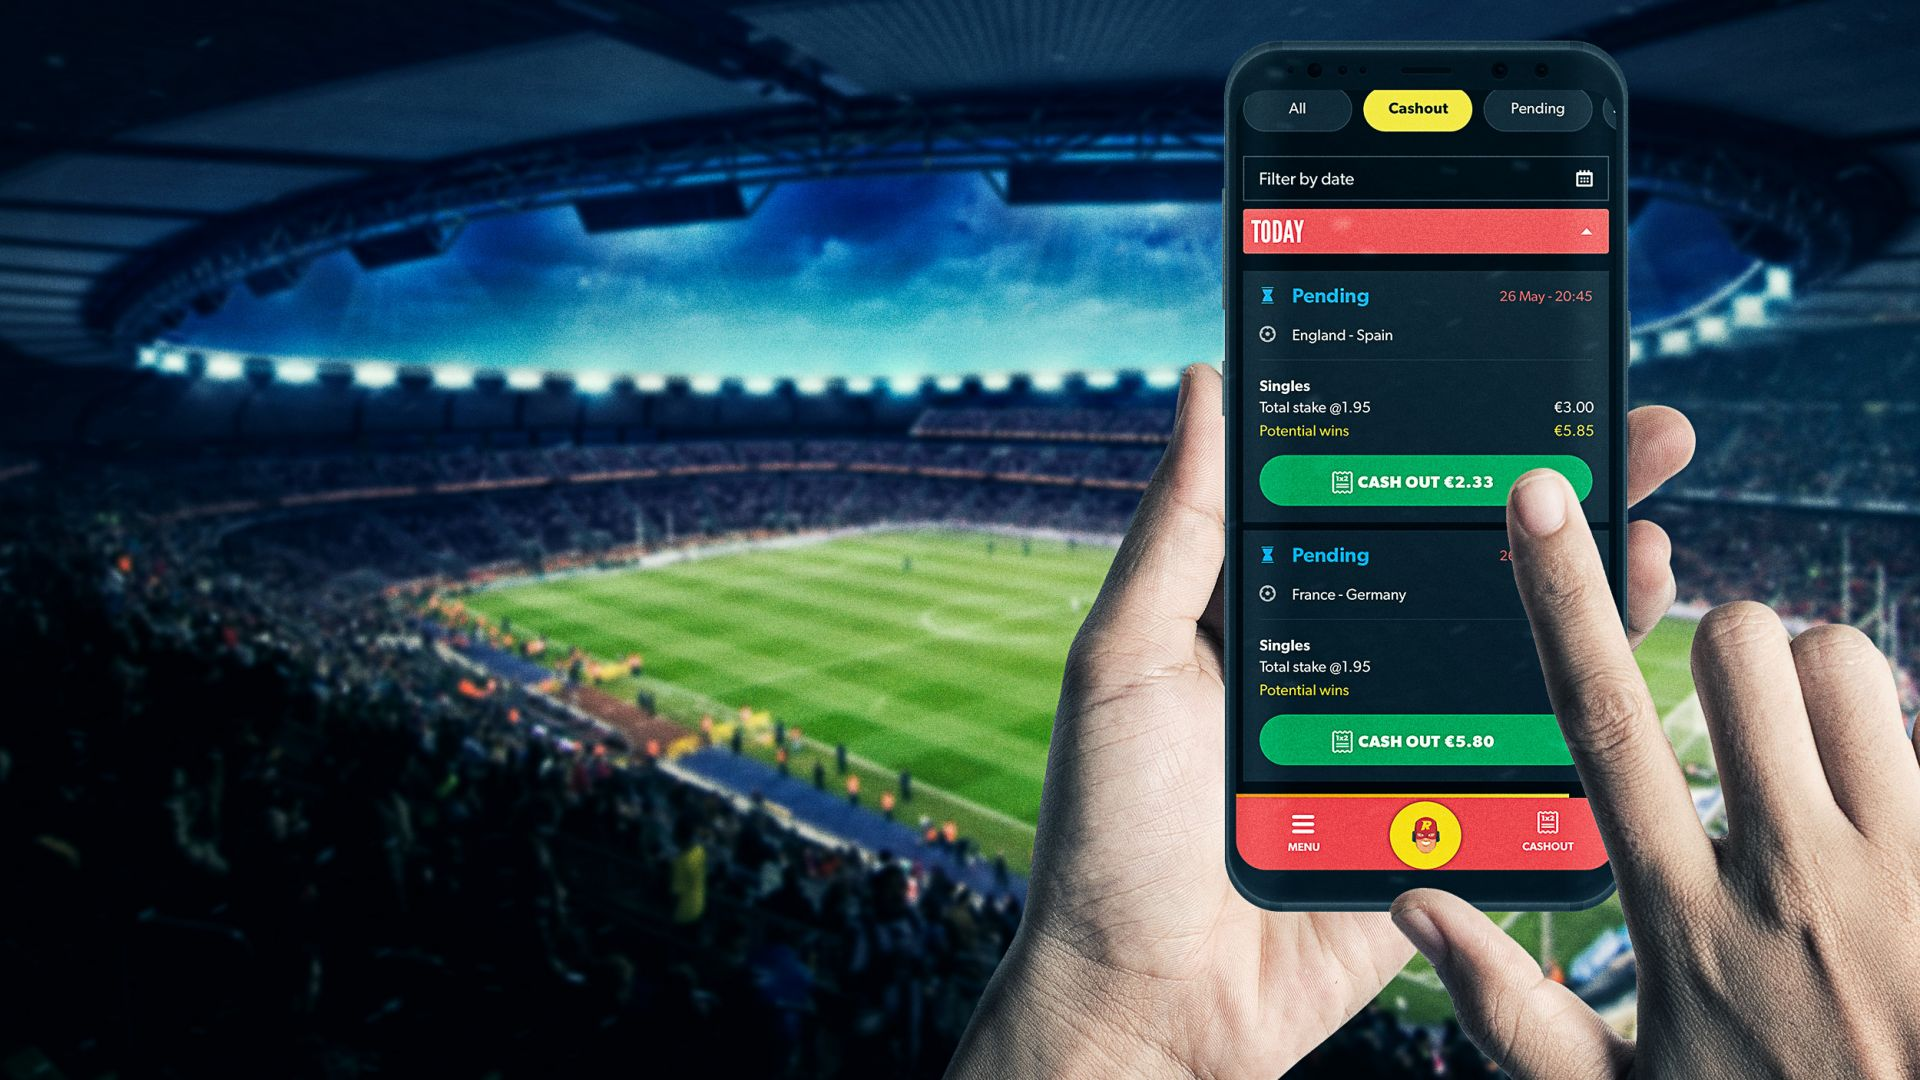 The basic betting strategies you should teach your friends